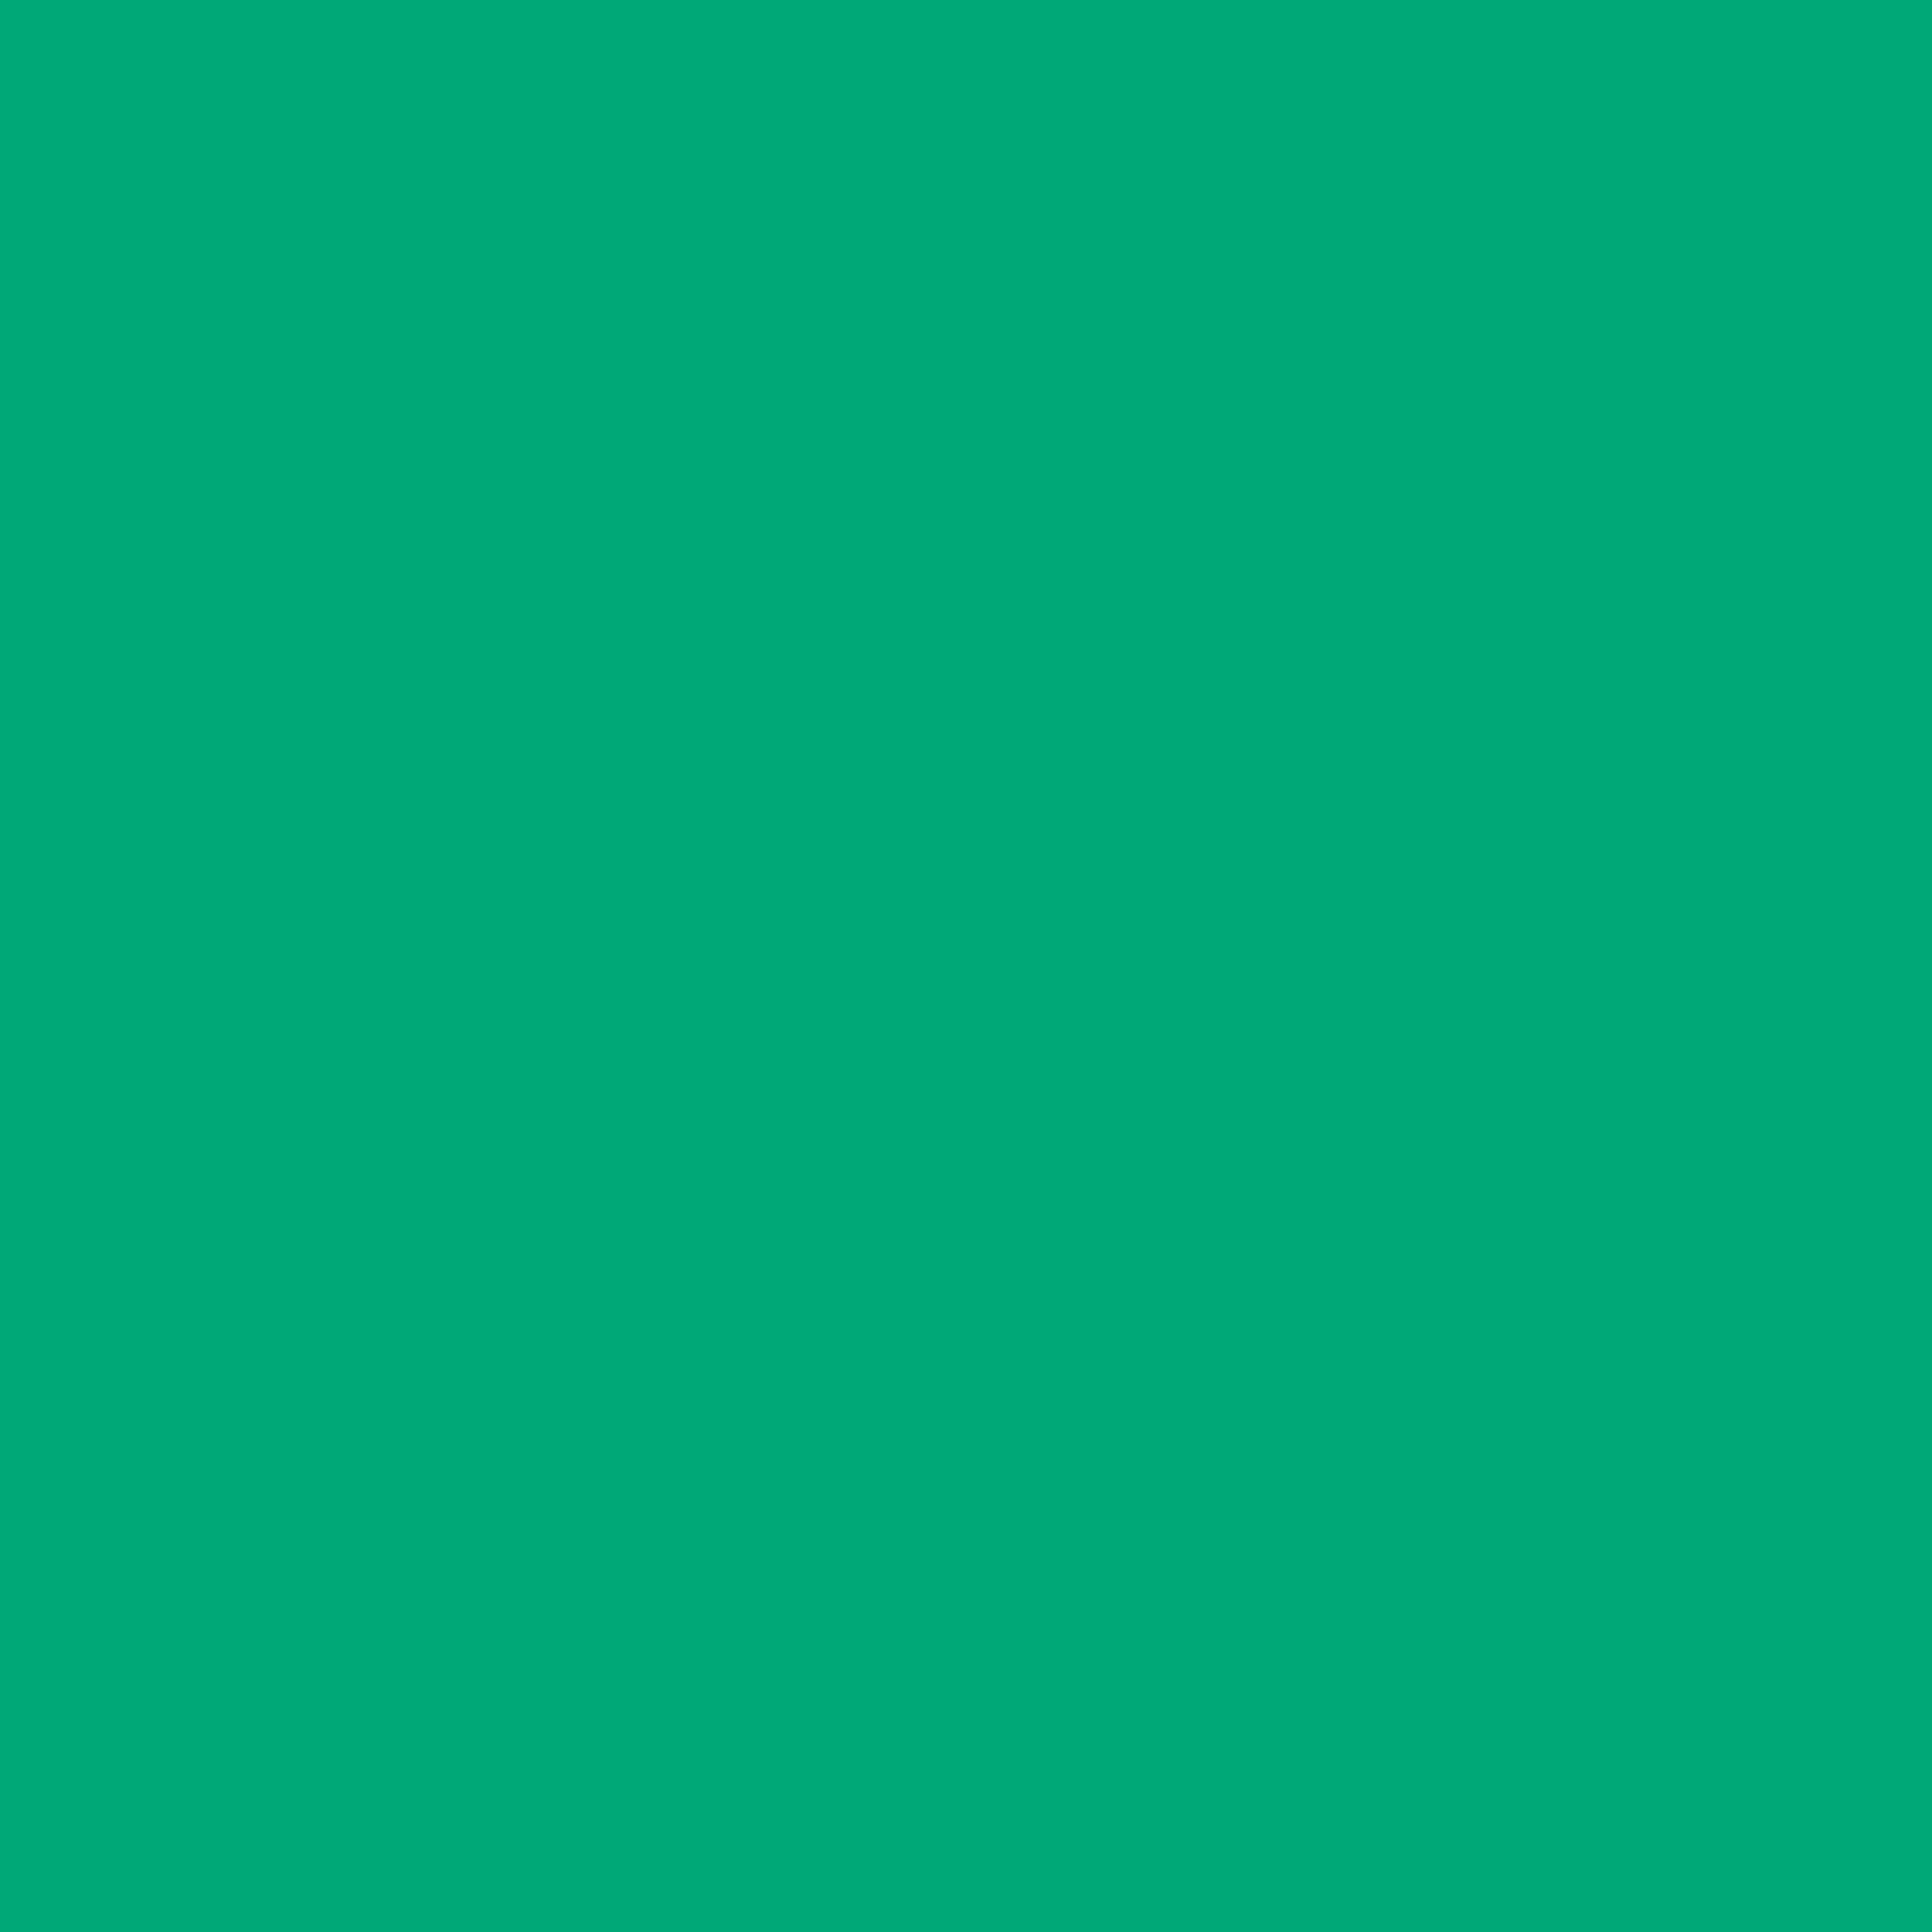 3600x3600 Green Munsell Solid Color Background